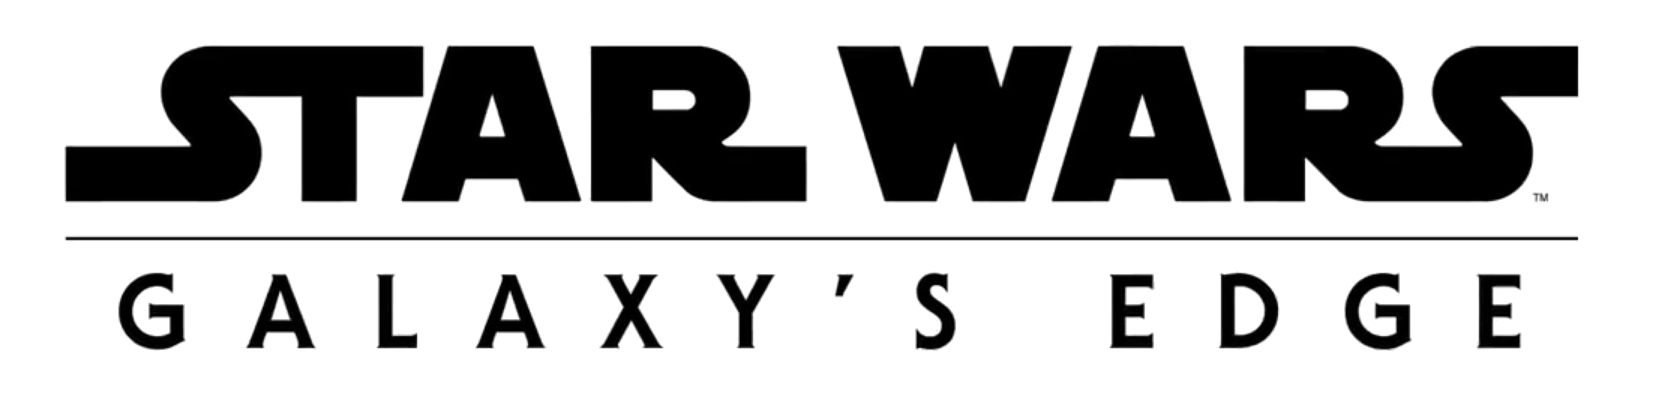 Galaxy's Edge logo.png